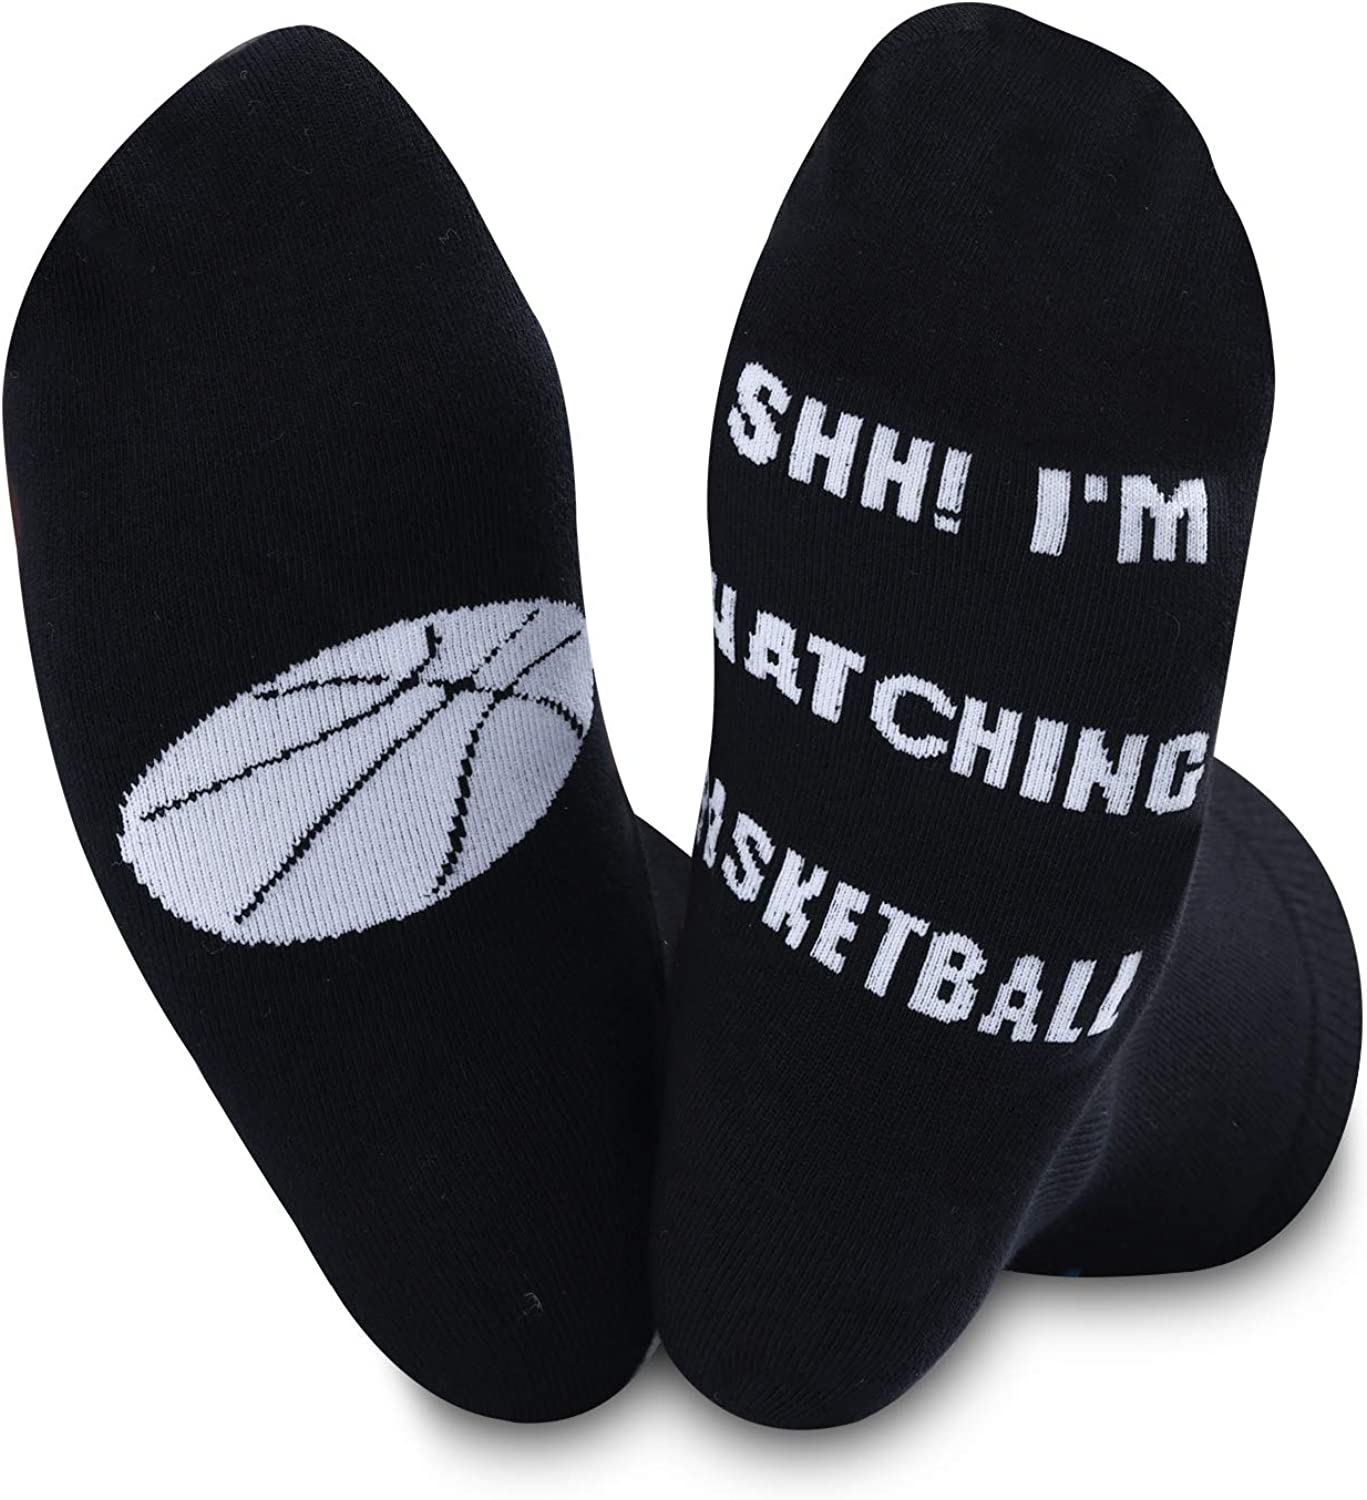 TSOTMO 2 Pairs Basketball Sale price New sales Ideal Lover Fans Gift